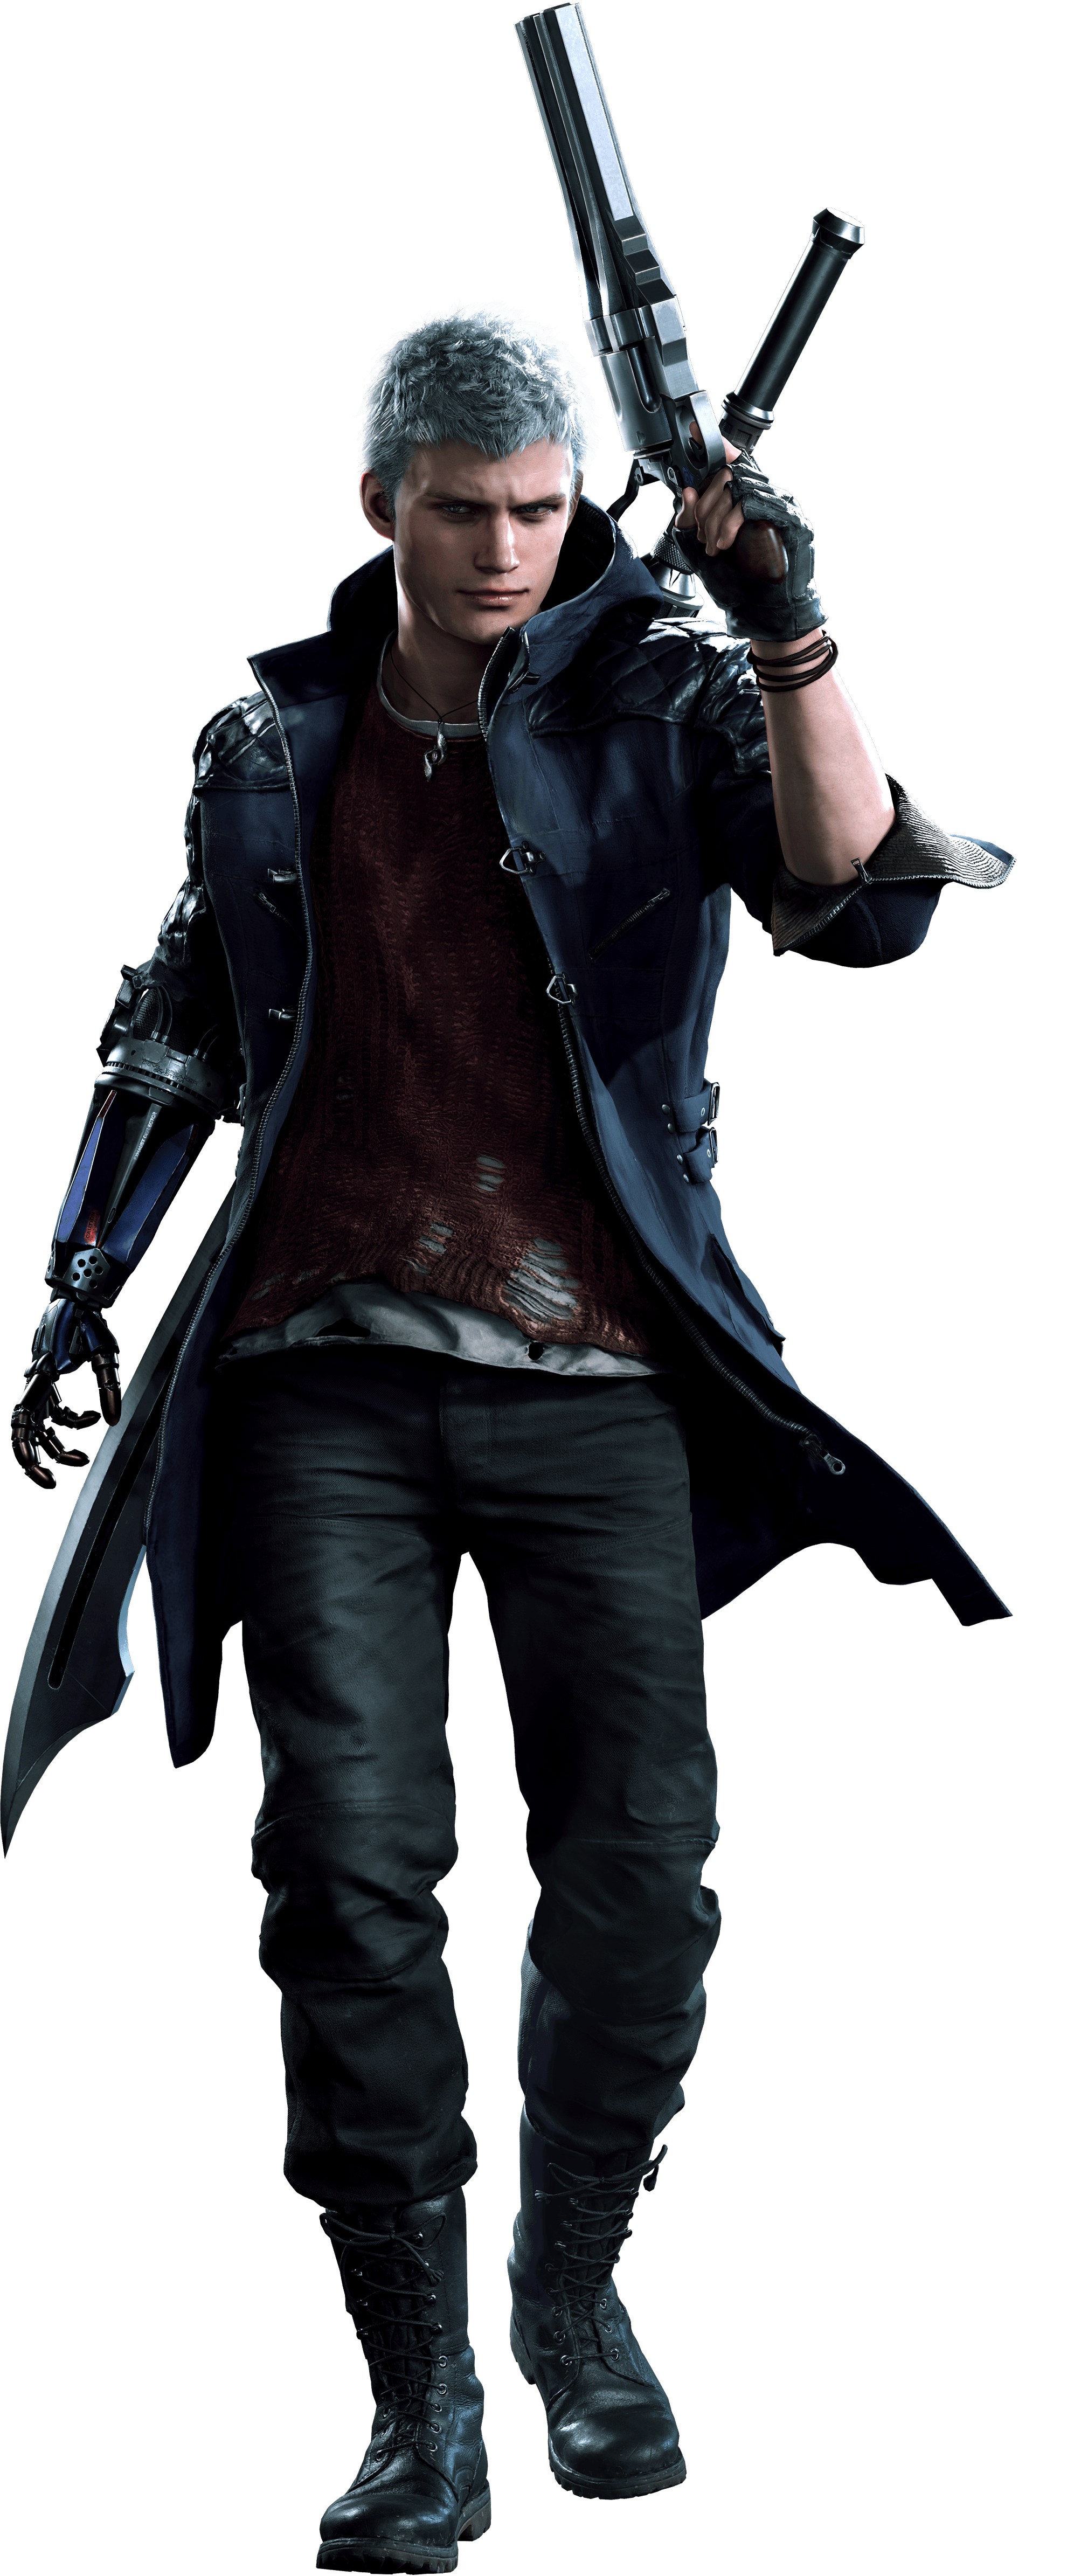 Devil May Cry 5 character